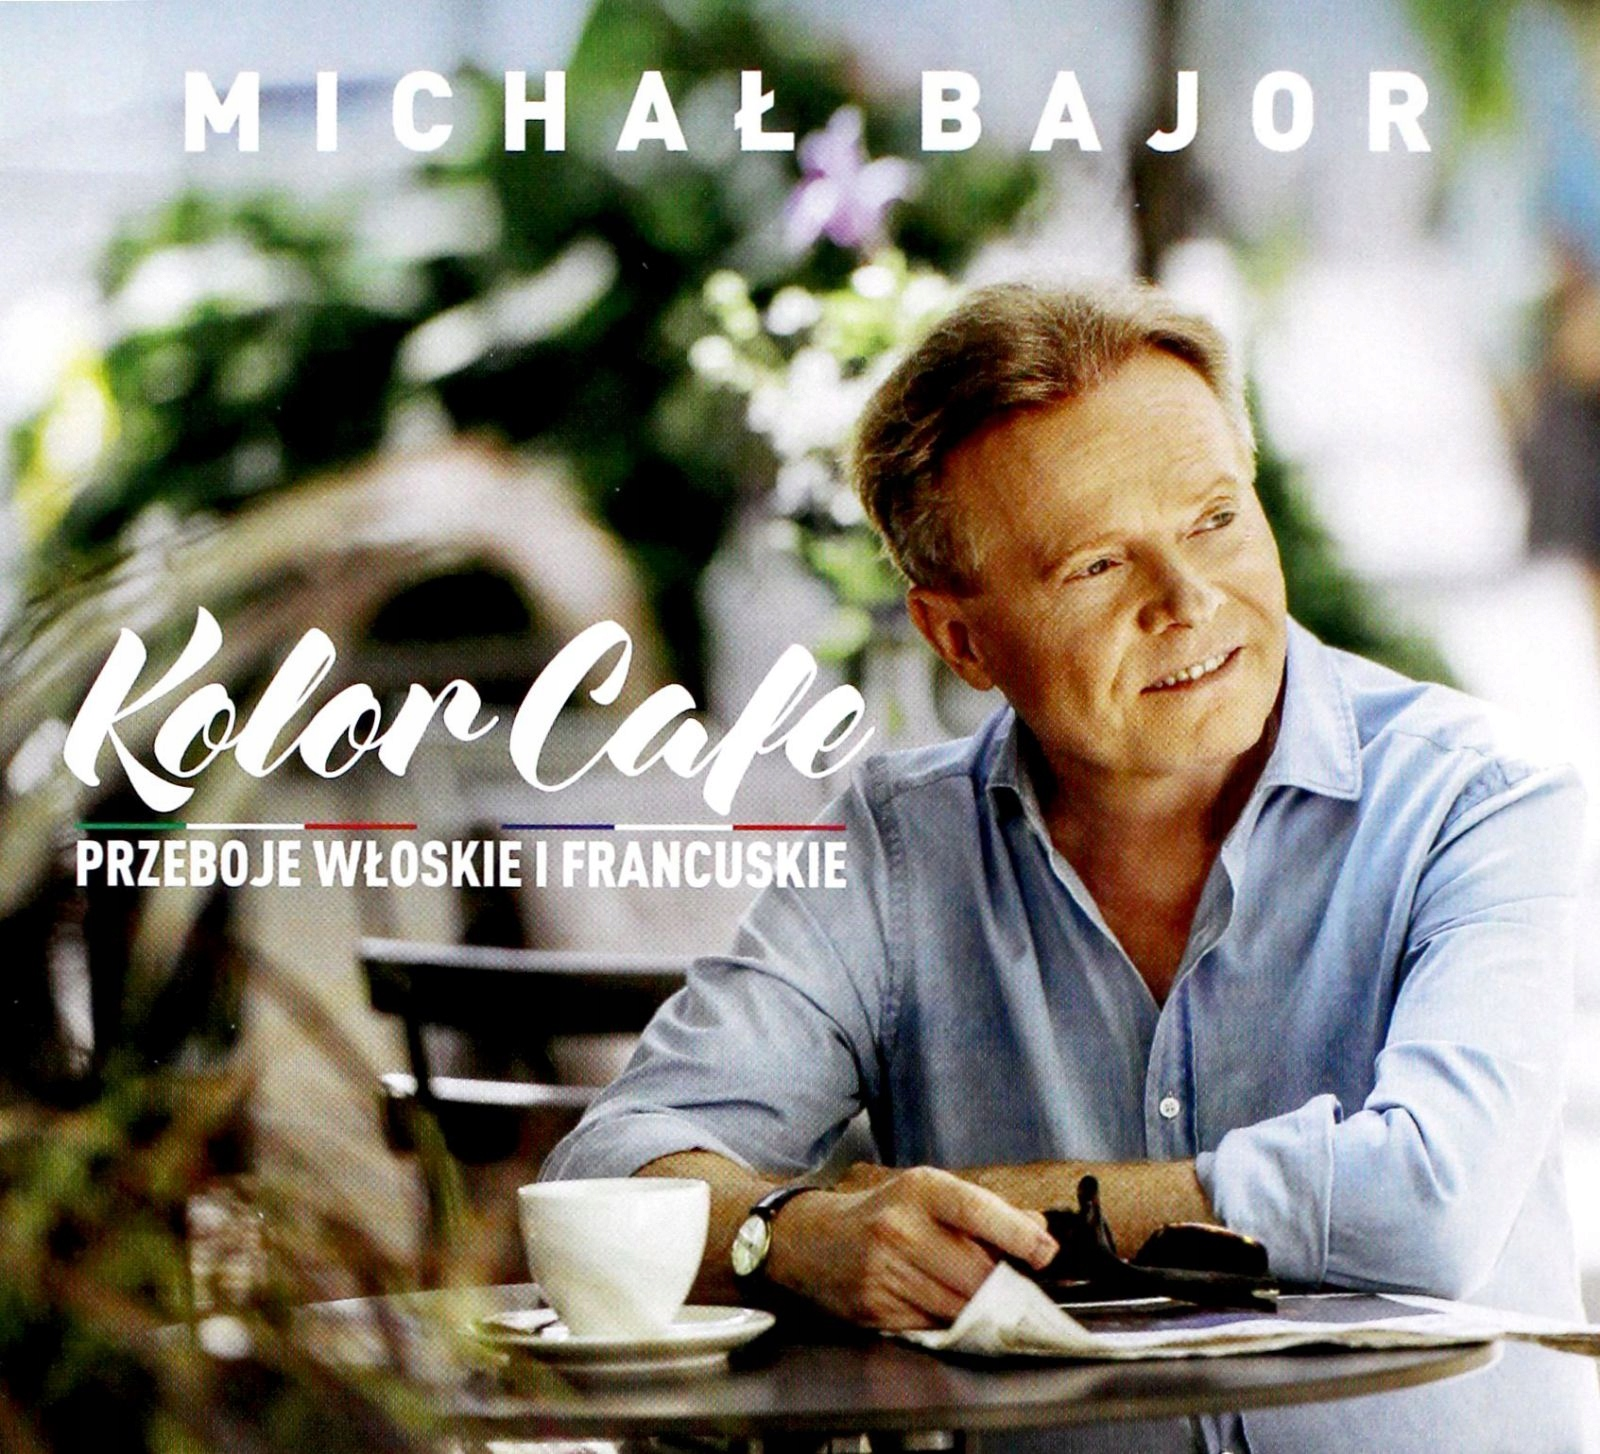 Item MICHAEL BAJOR: COLOR CAFE. THE BEST OF ITALIAN AND FRANC